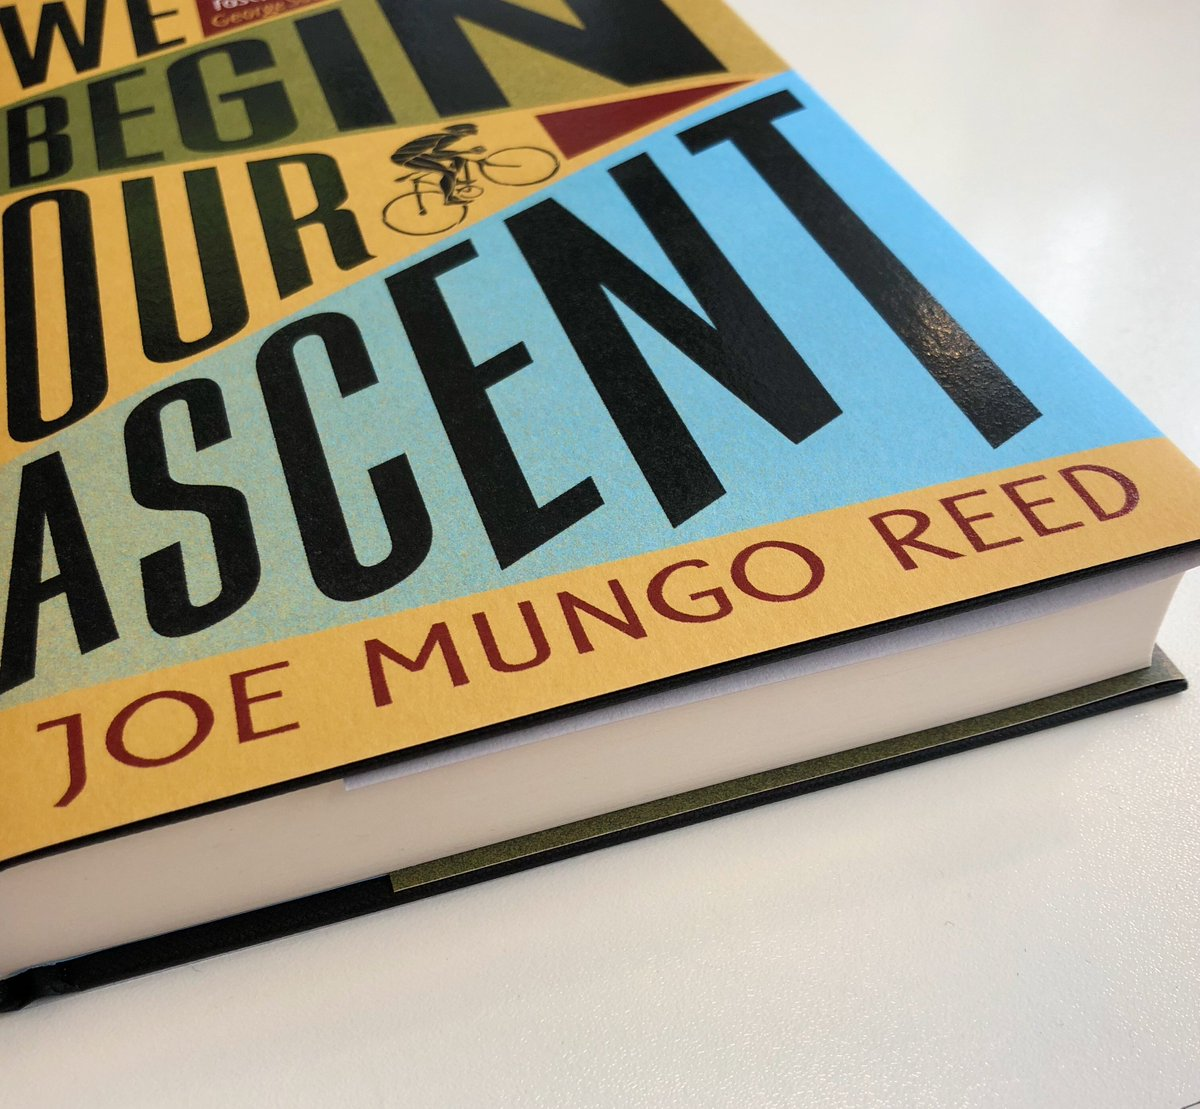 Cant wait until @Joemungoreeds excellent debut novel We Begin Our Ascent hits the shelves? Weve got you covered with a brilliant piece written by him on the @IndieThinking website: indiethinking.co.uk/6368/on-writin… #WeBeginOurAscent 🚵♂️